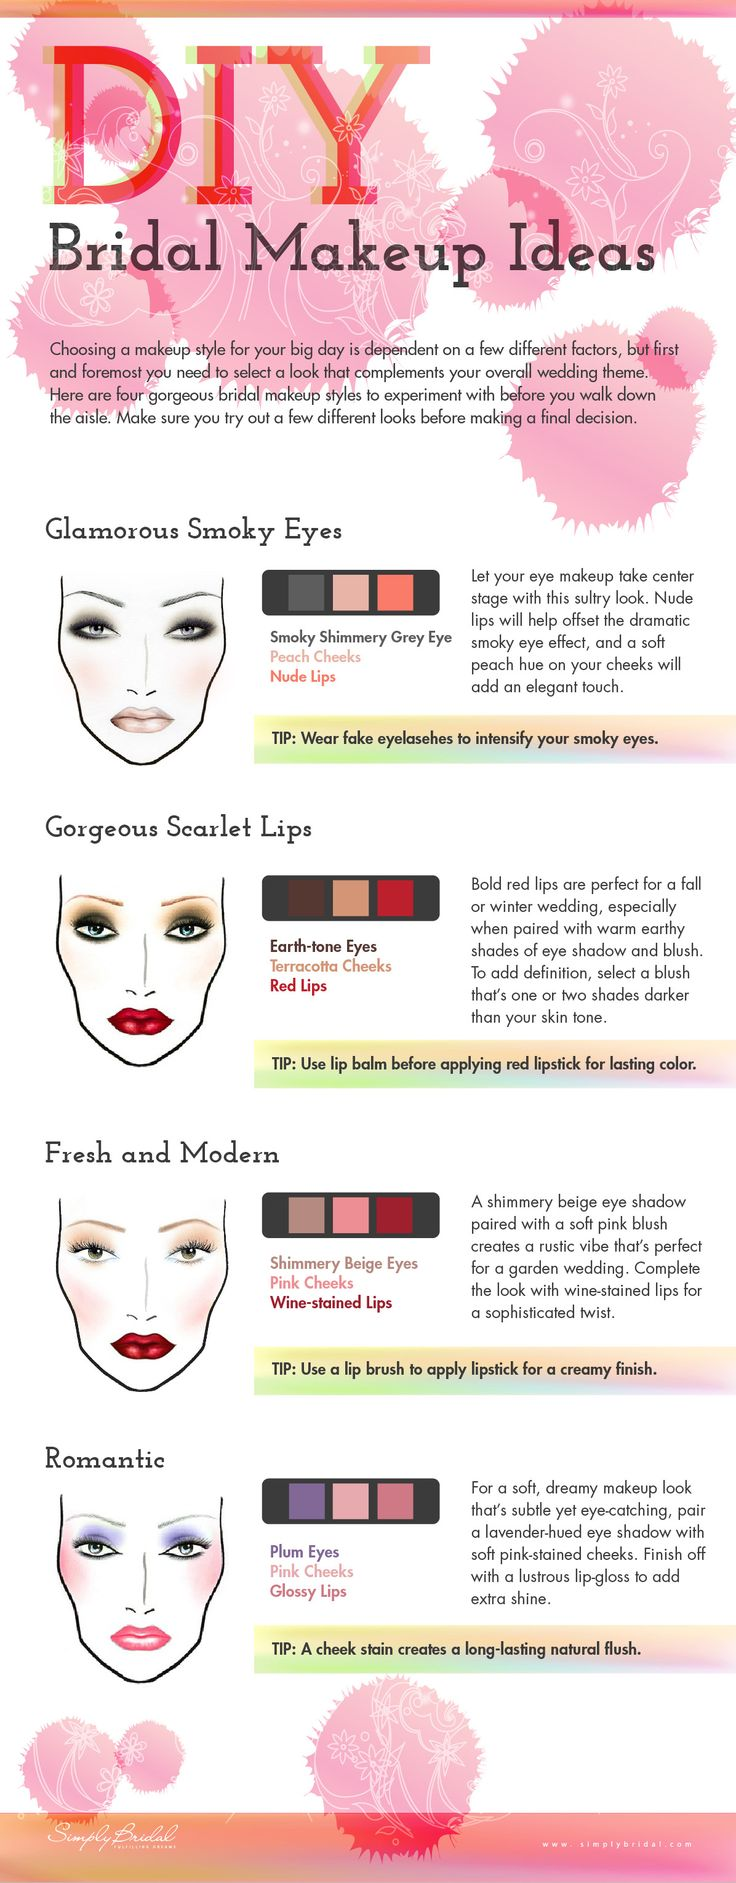 DIY Bridal Makeup Ideas #Infographics — Lightscap3s.com